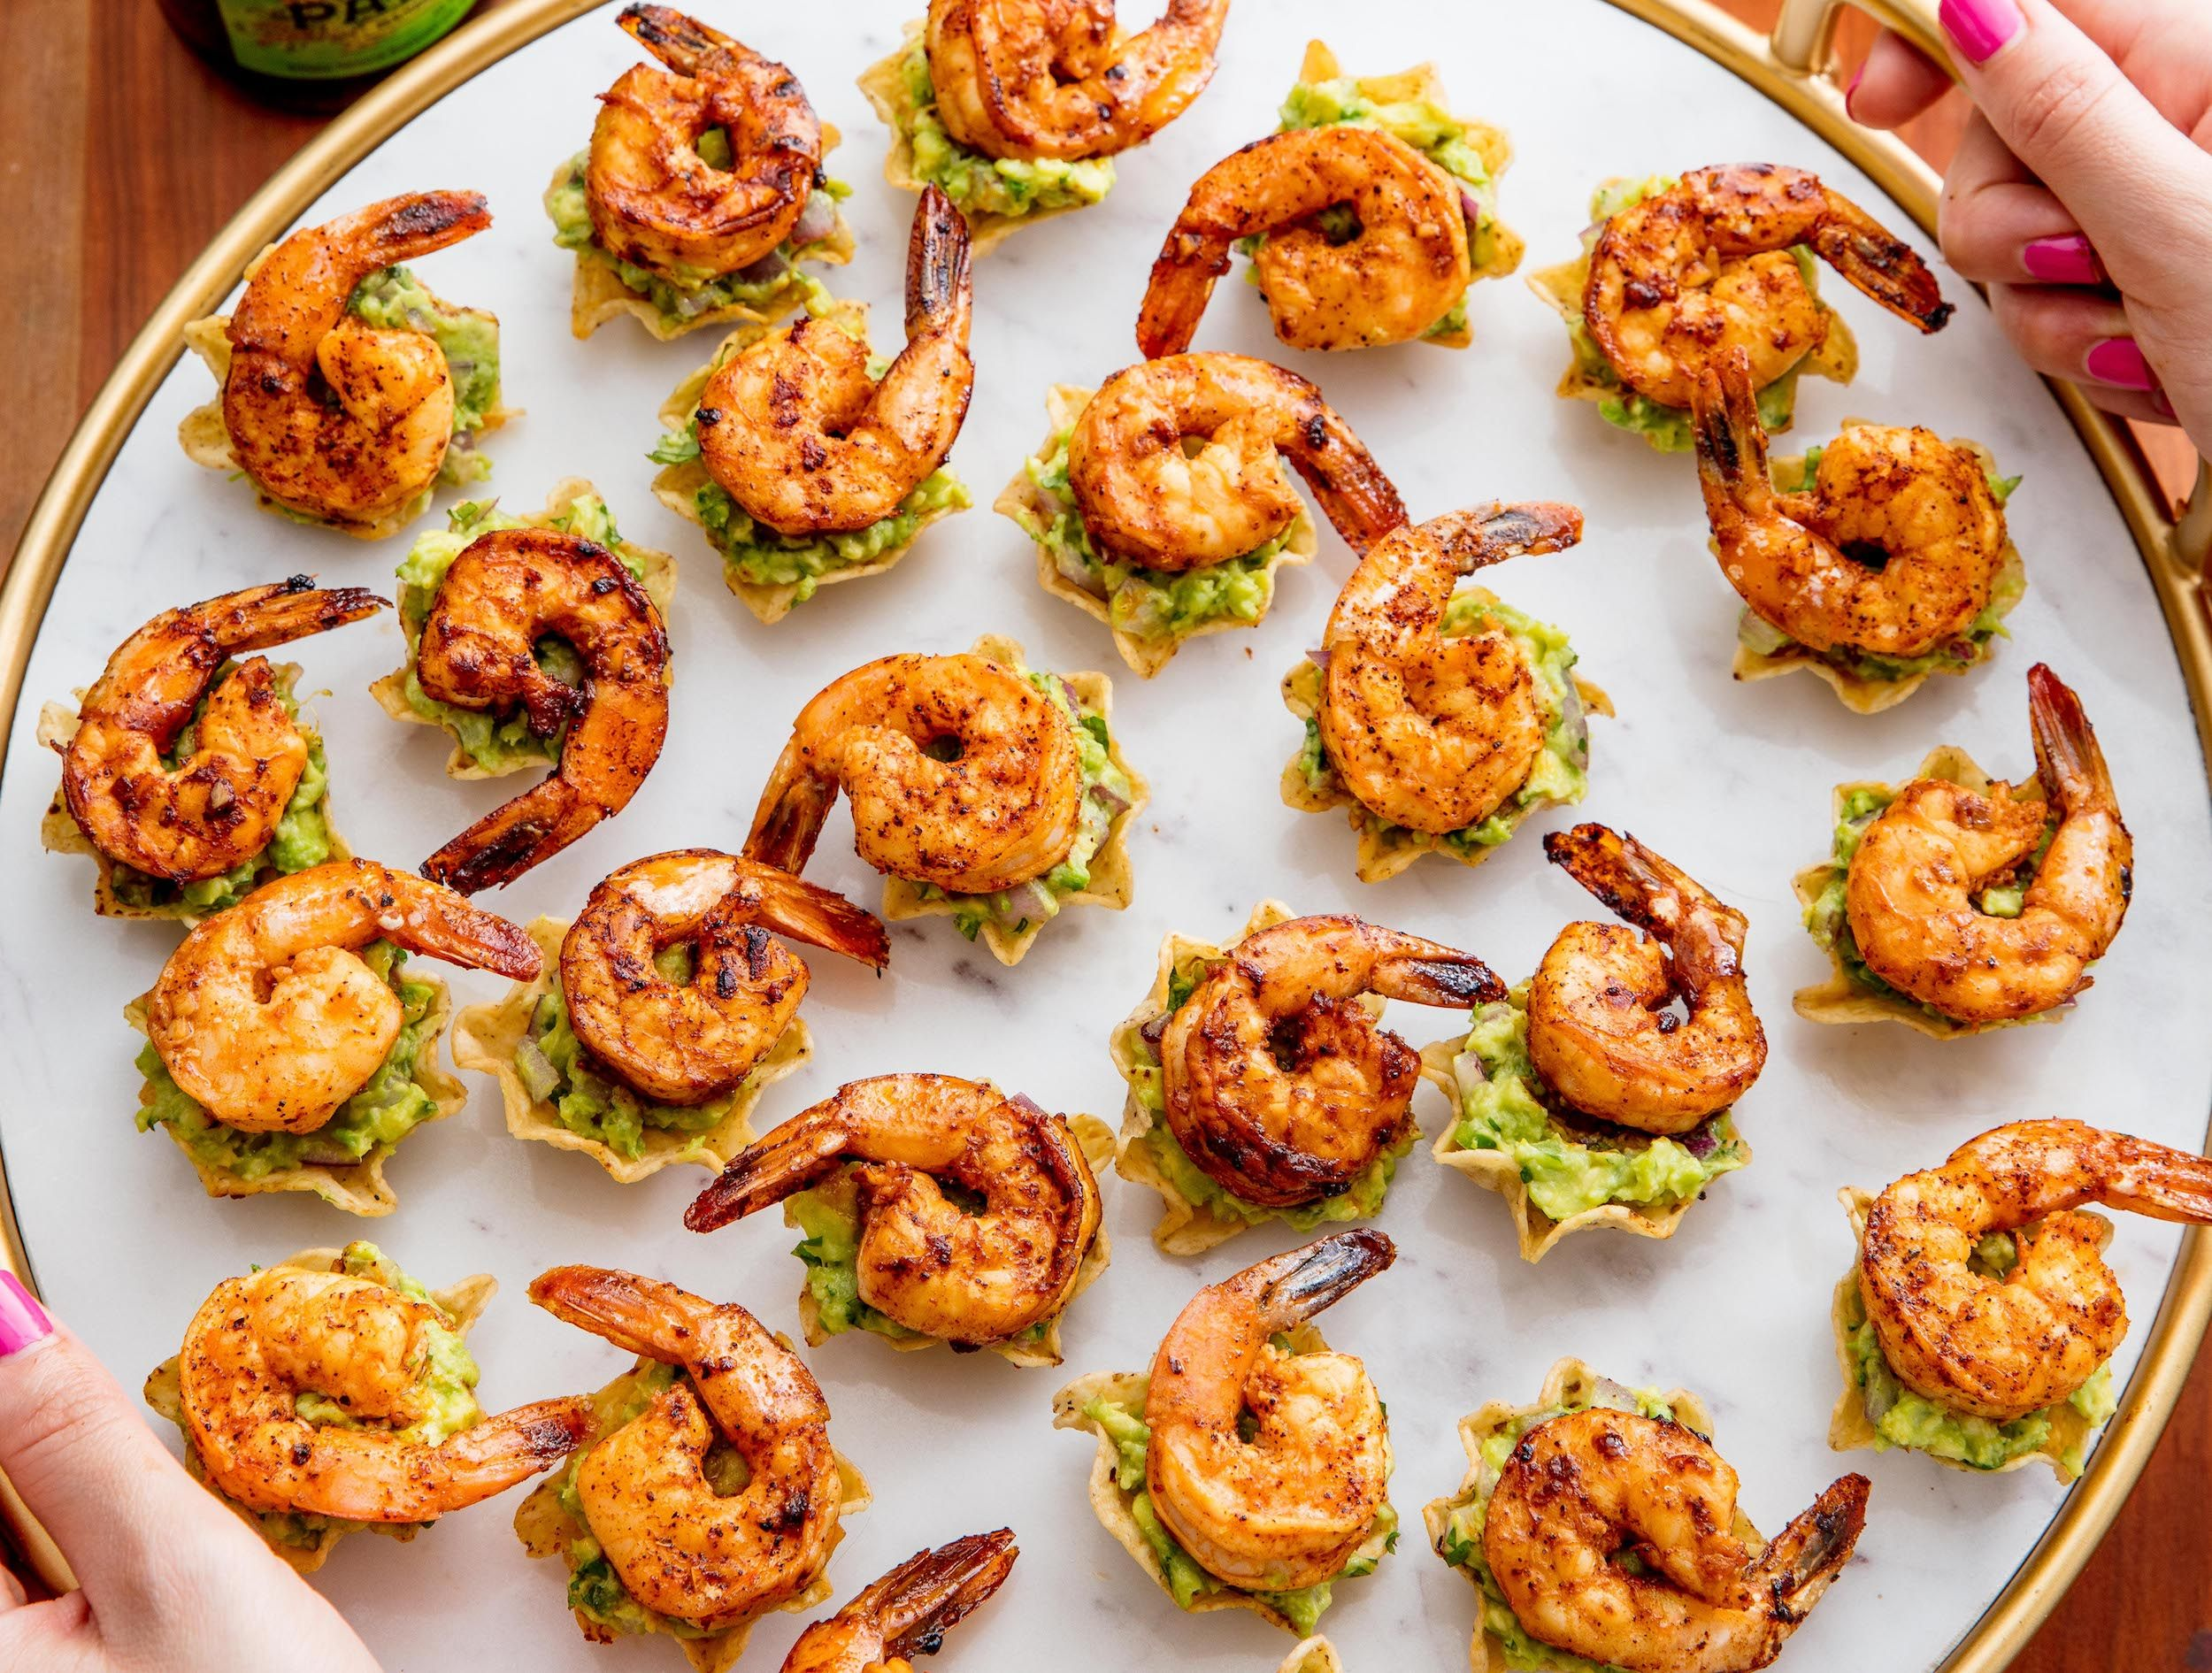 90 easy summer appetizers best recipes for summer party appetizer 90 easy summer appetizers best recipes for summer party appetizer ideas delish forumfinder Gallery